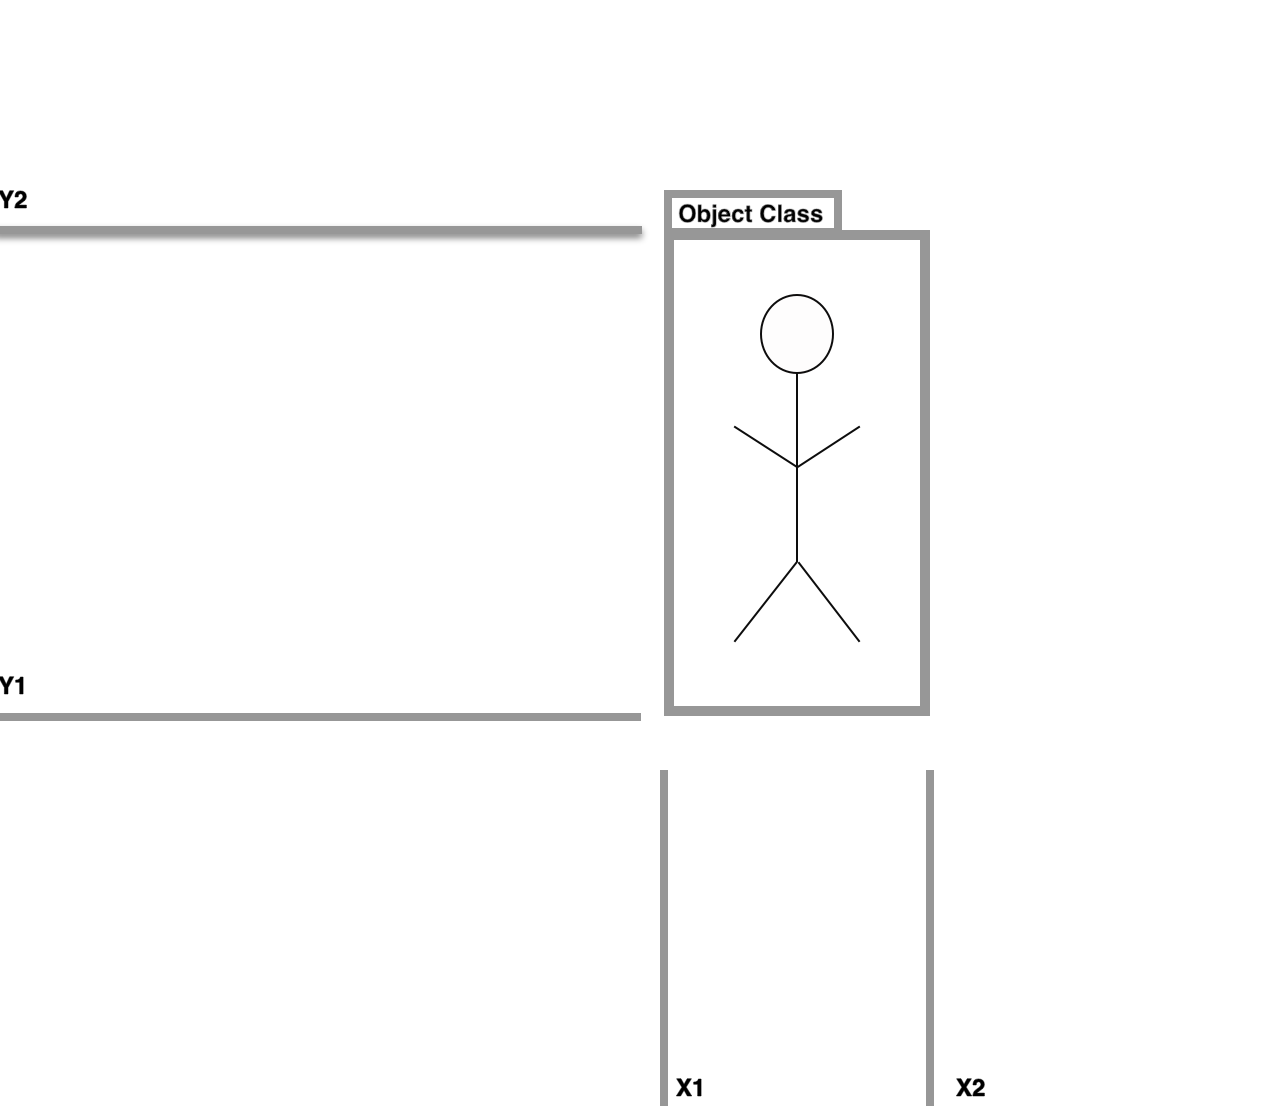 Stick figure enclosed in a gray bounding box with x1, y1, x2, y2 labeled.